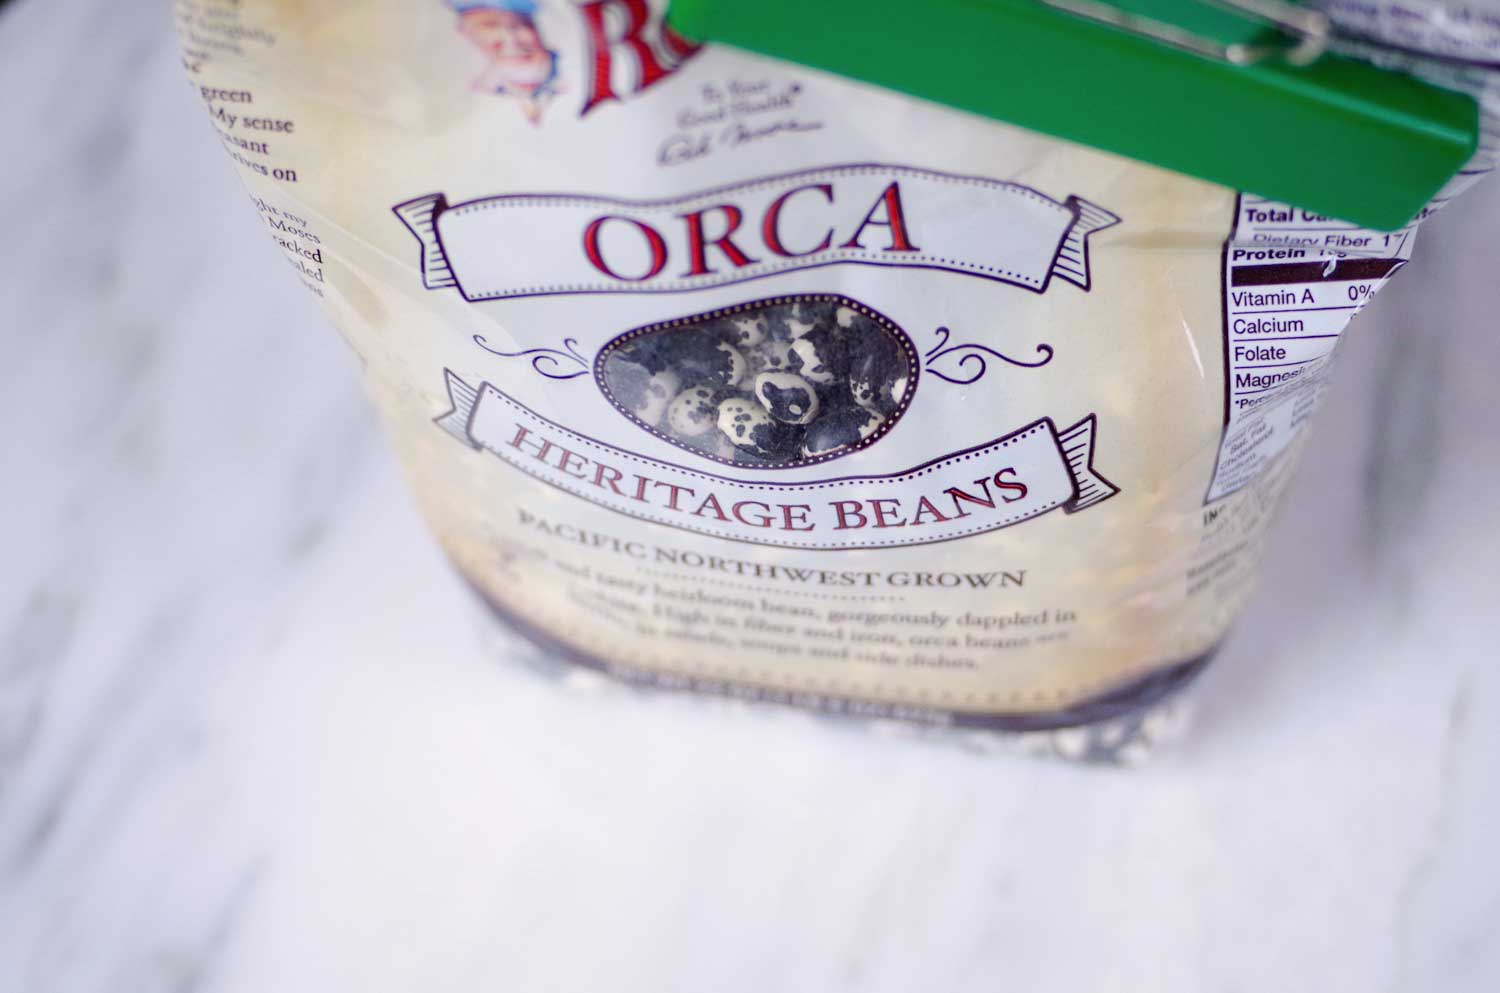 Bob's Red Mill Orca Heritage Beans, GMO Free